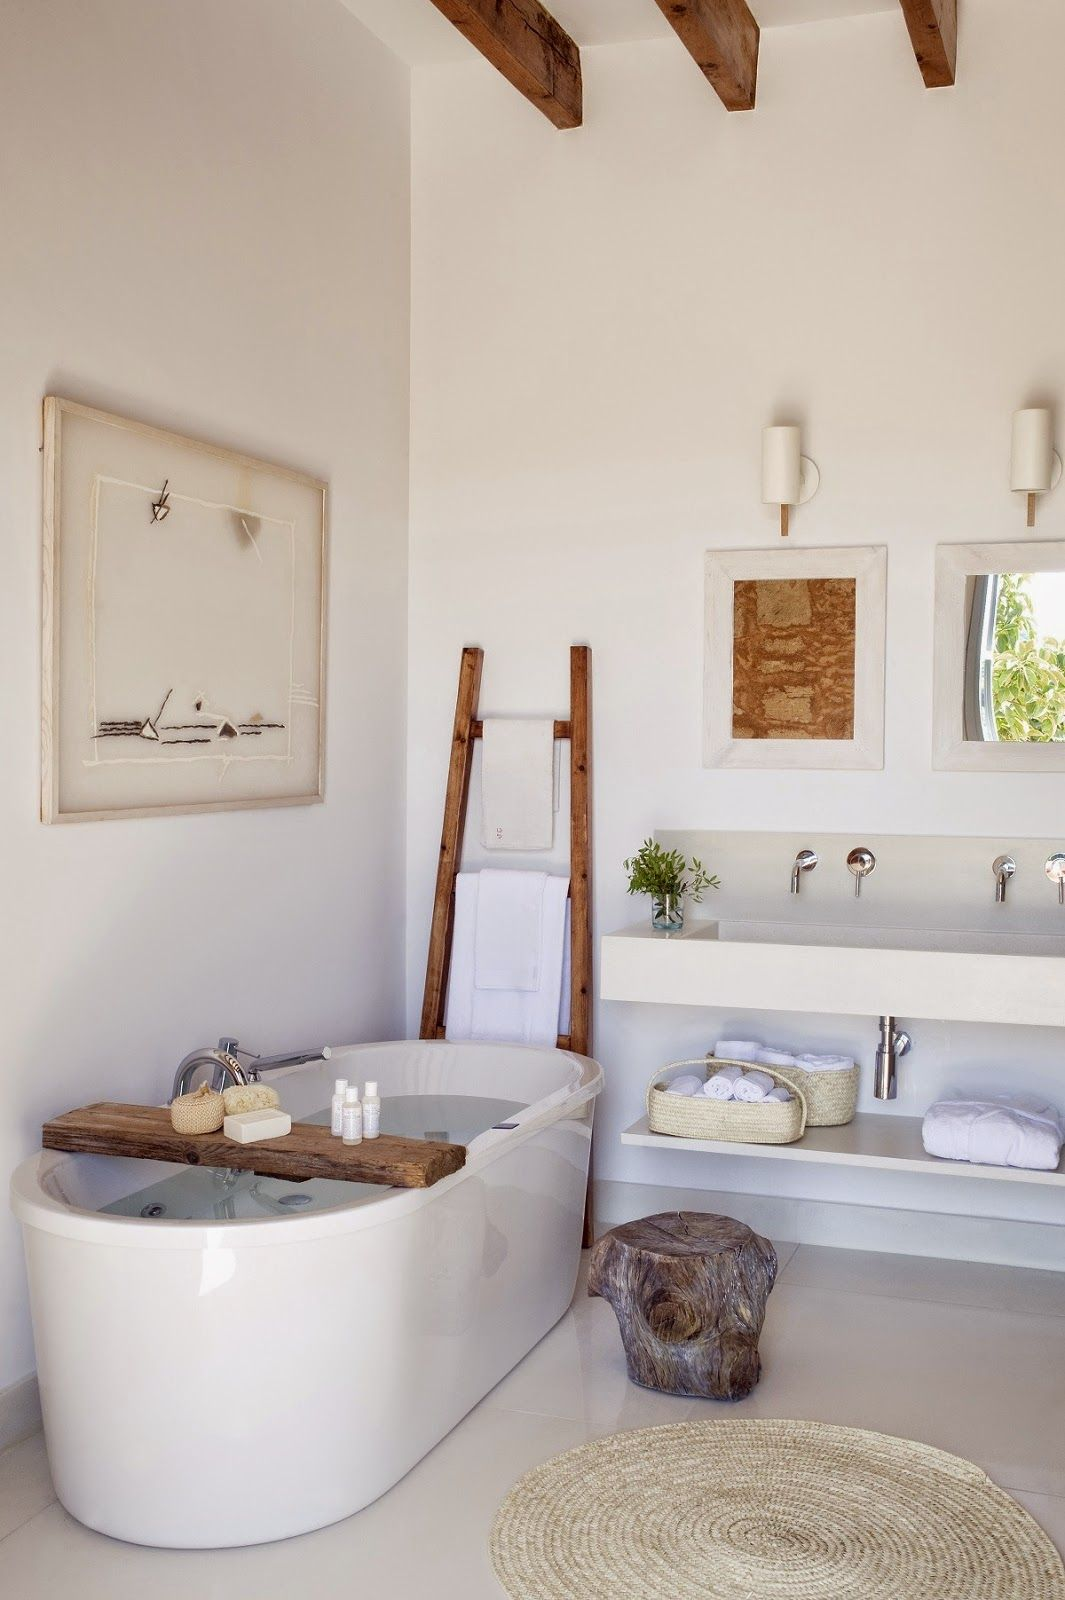 Love the wooden board and towel holder | house ideas | Pinterest ...